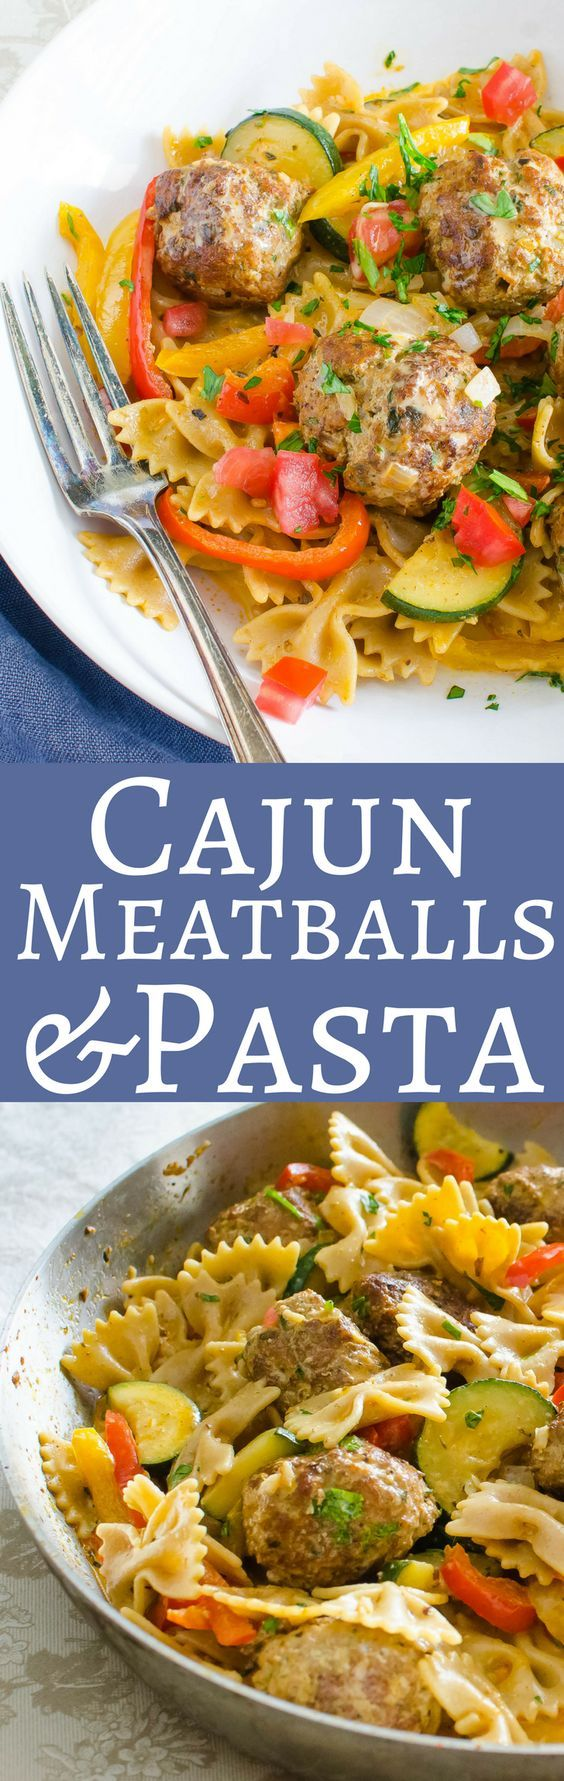 This easy comfort food recipe is loaded with veg, tender pork meatballs and spiked with a cajun cream sauce! Get the recipe for Cajun Meatballs and Pasta here! #pasta #bowtiepasta #cajun #mardigrasrecipes #mardigras #pork #porkmeatballs #cajuncreamsauce #creamsauce #zucchini #peppers #tomatoes #comfortfood #comfortfooddinner #easydinnerrecipes